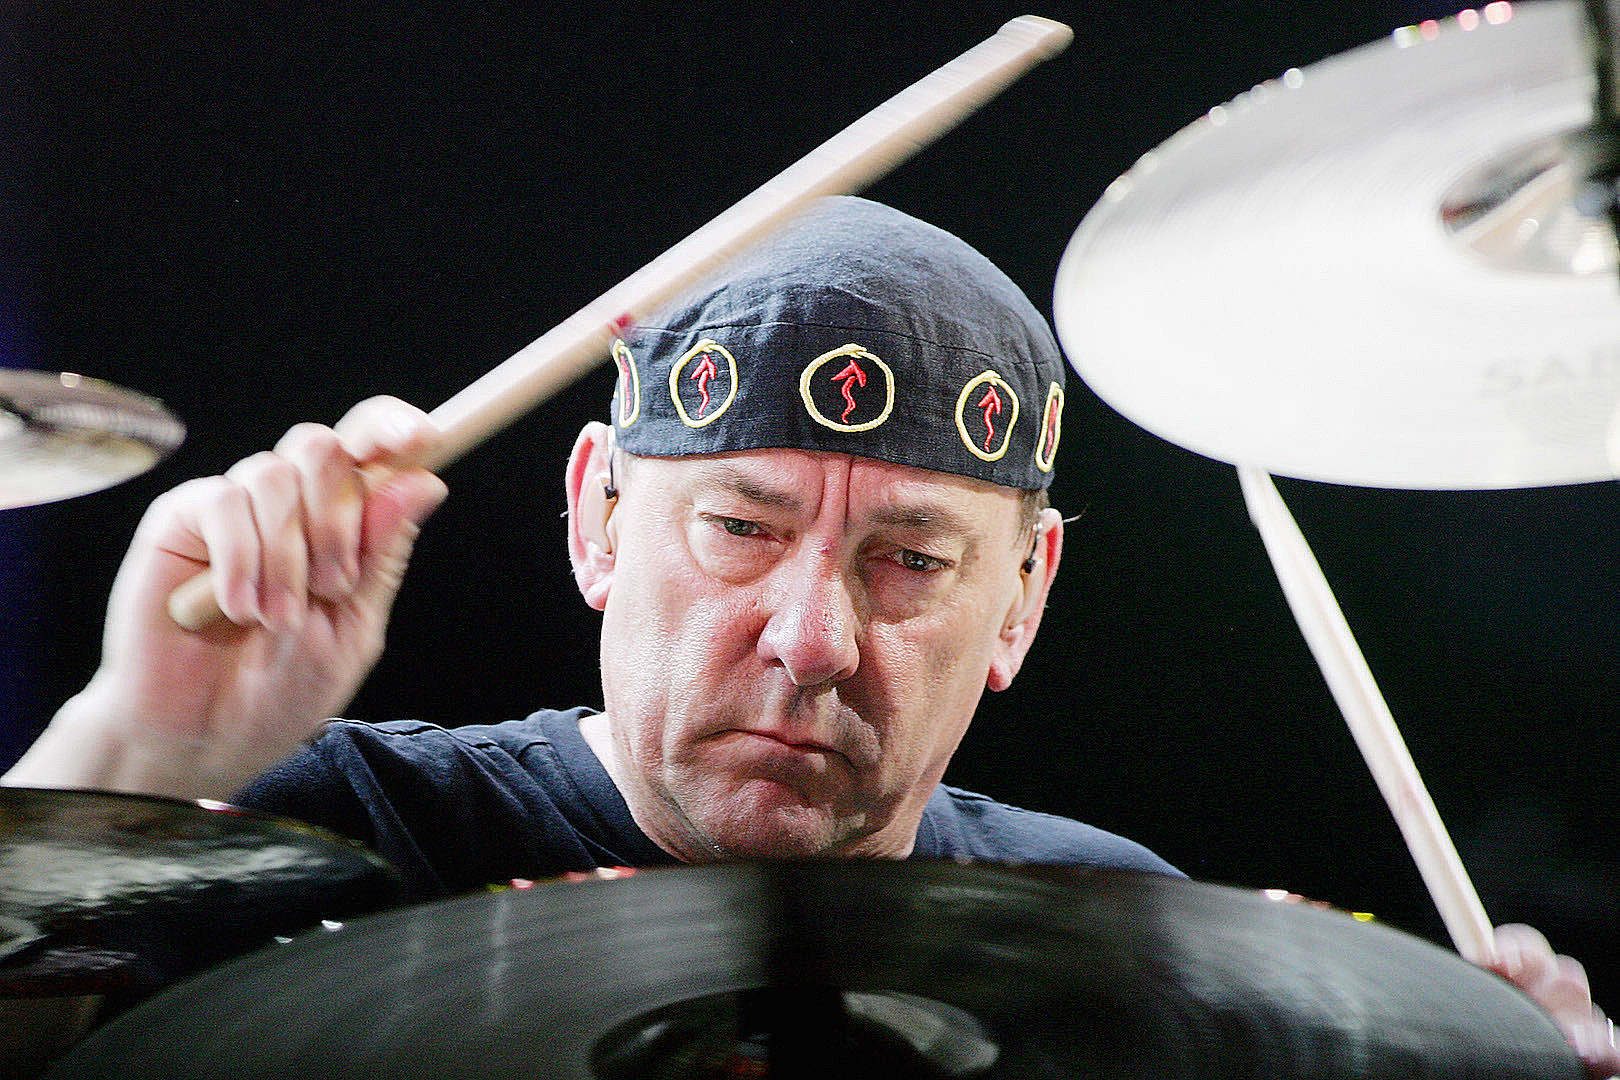 Neil Peart's Legacy Honored With 'Spirit of Drumming' Scholarship